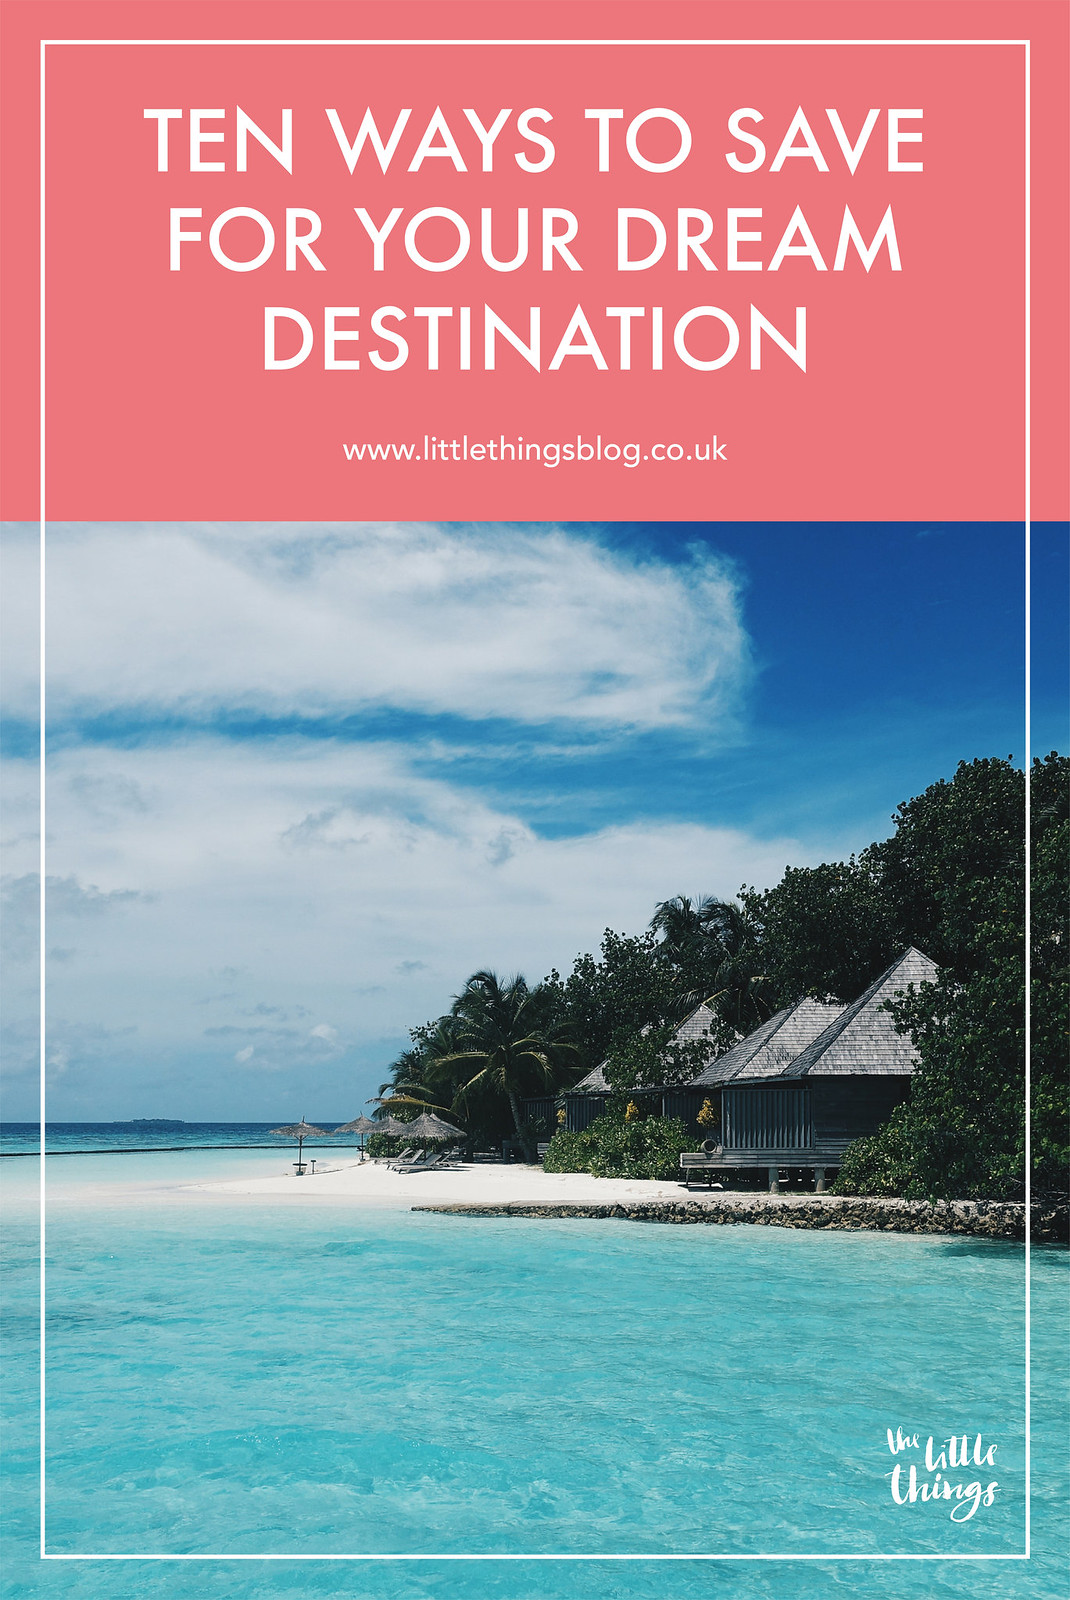 10 ways to save for your dream holiday vacation destination travel blogger UK